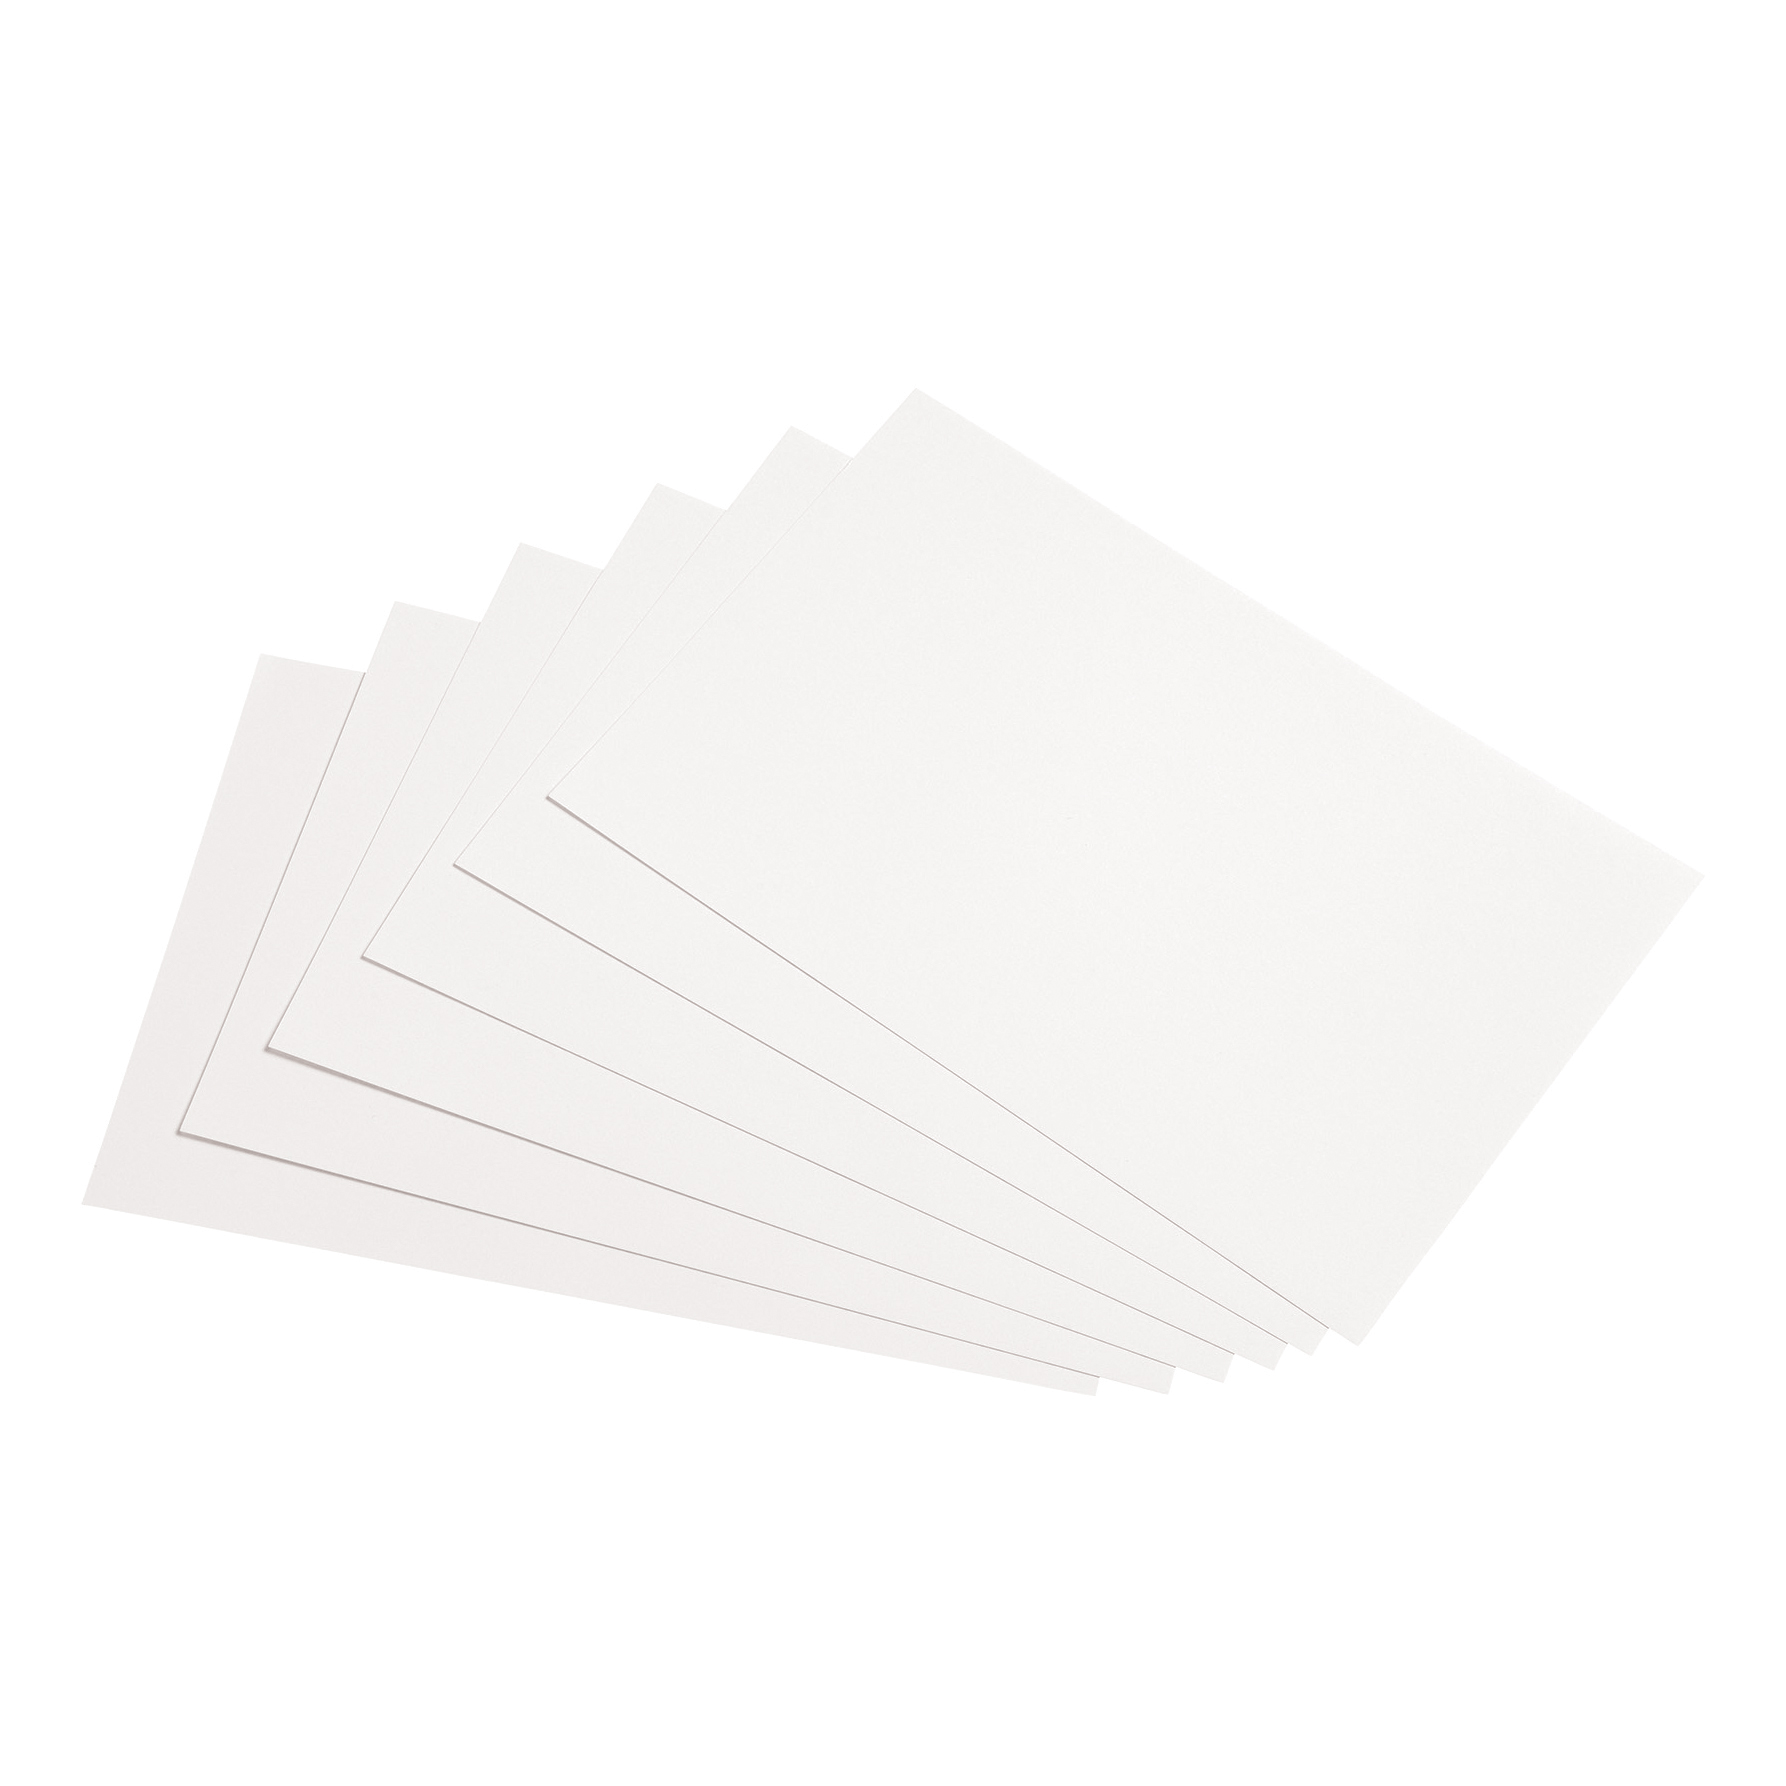 Record Cards 5 Star Office Record Cards Blank 8x5in 203x127mm White Pack 100